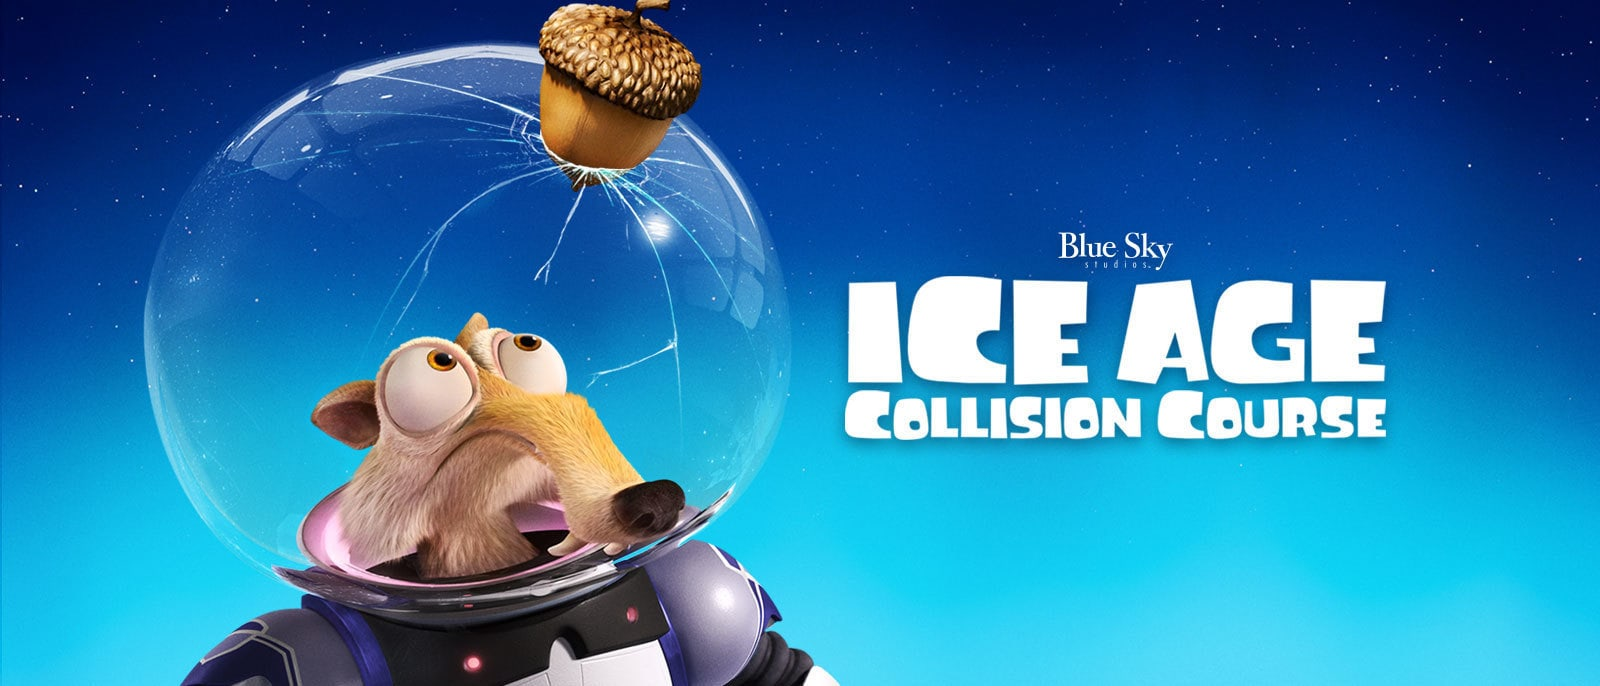 Ice Age: Collision Course Hero